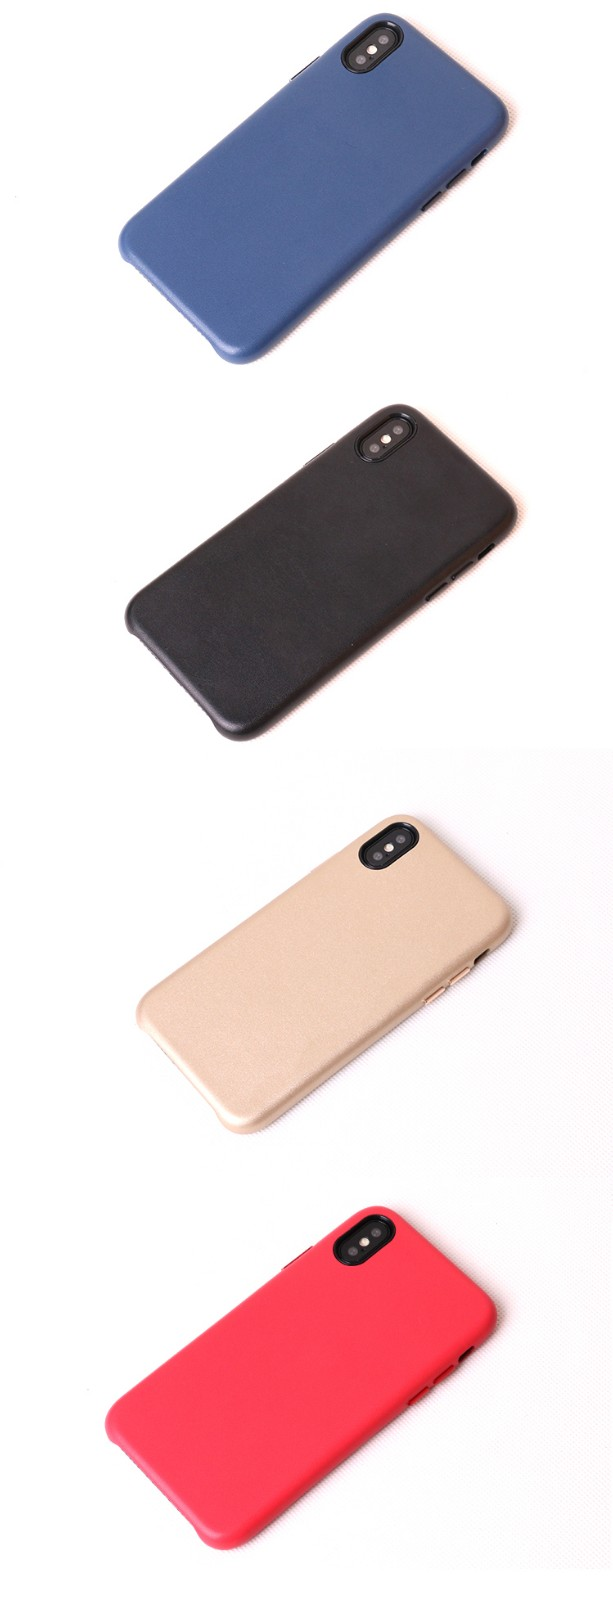 Vserstore colors iphone hard case on sale for iphone-8